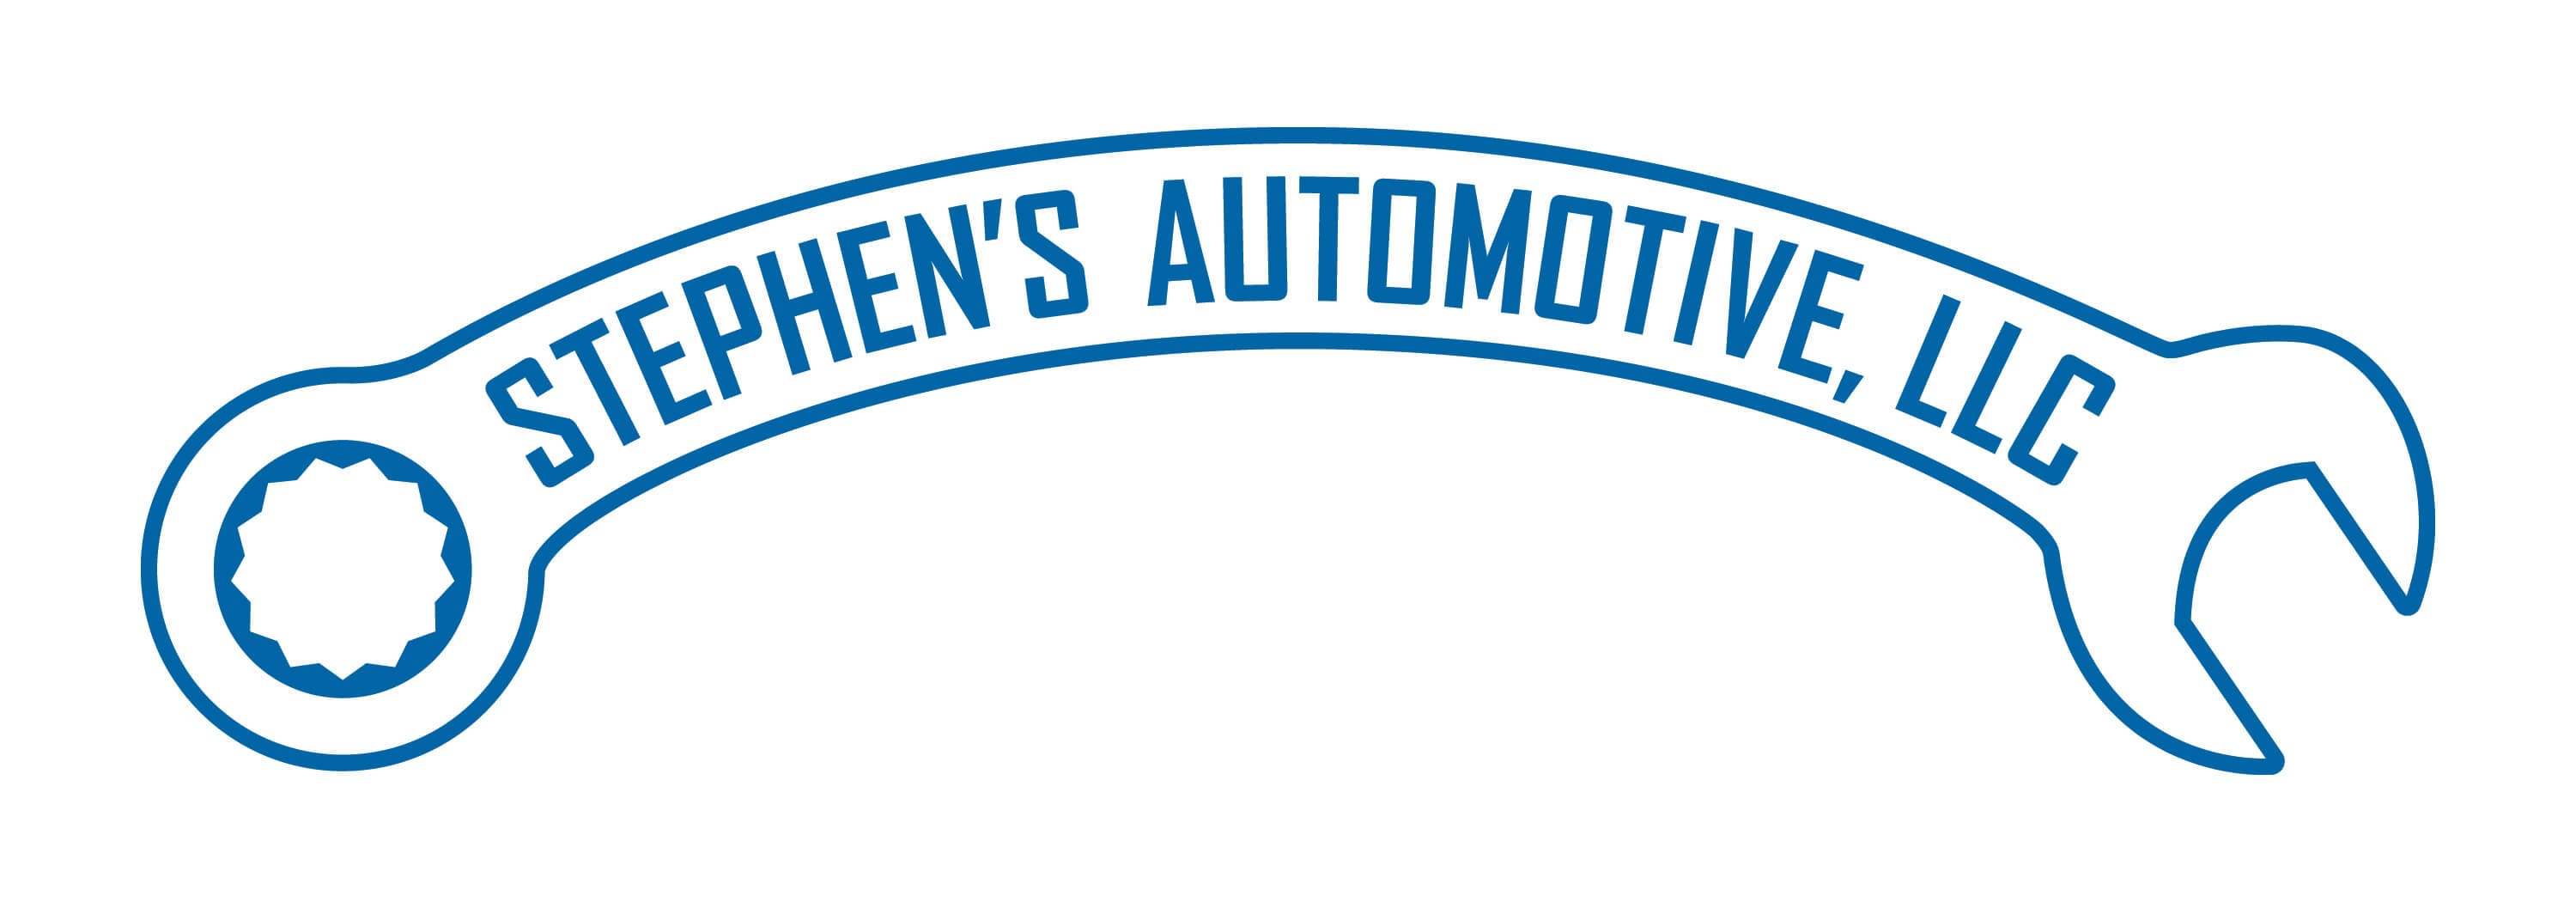 Stephen's Automotive